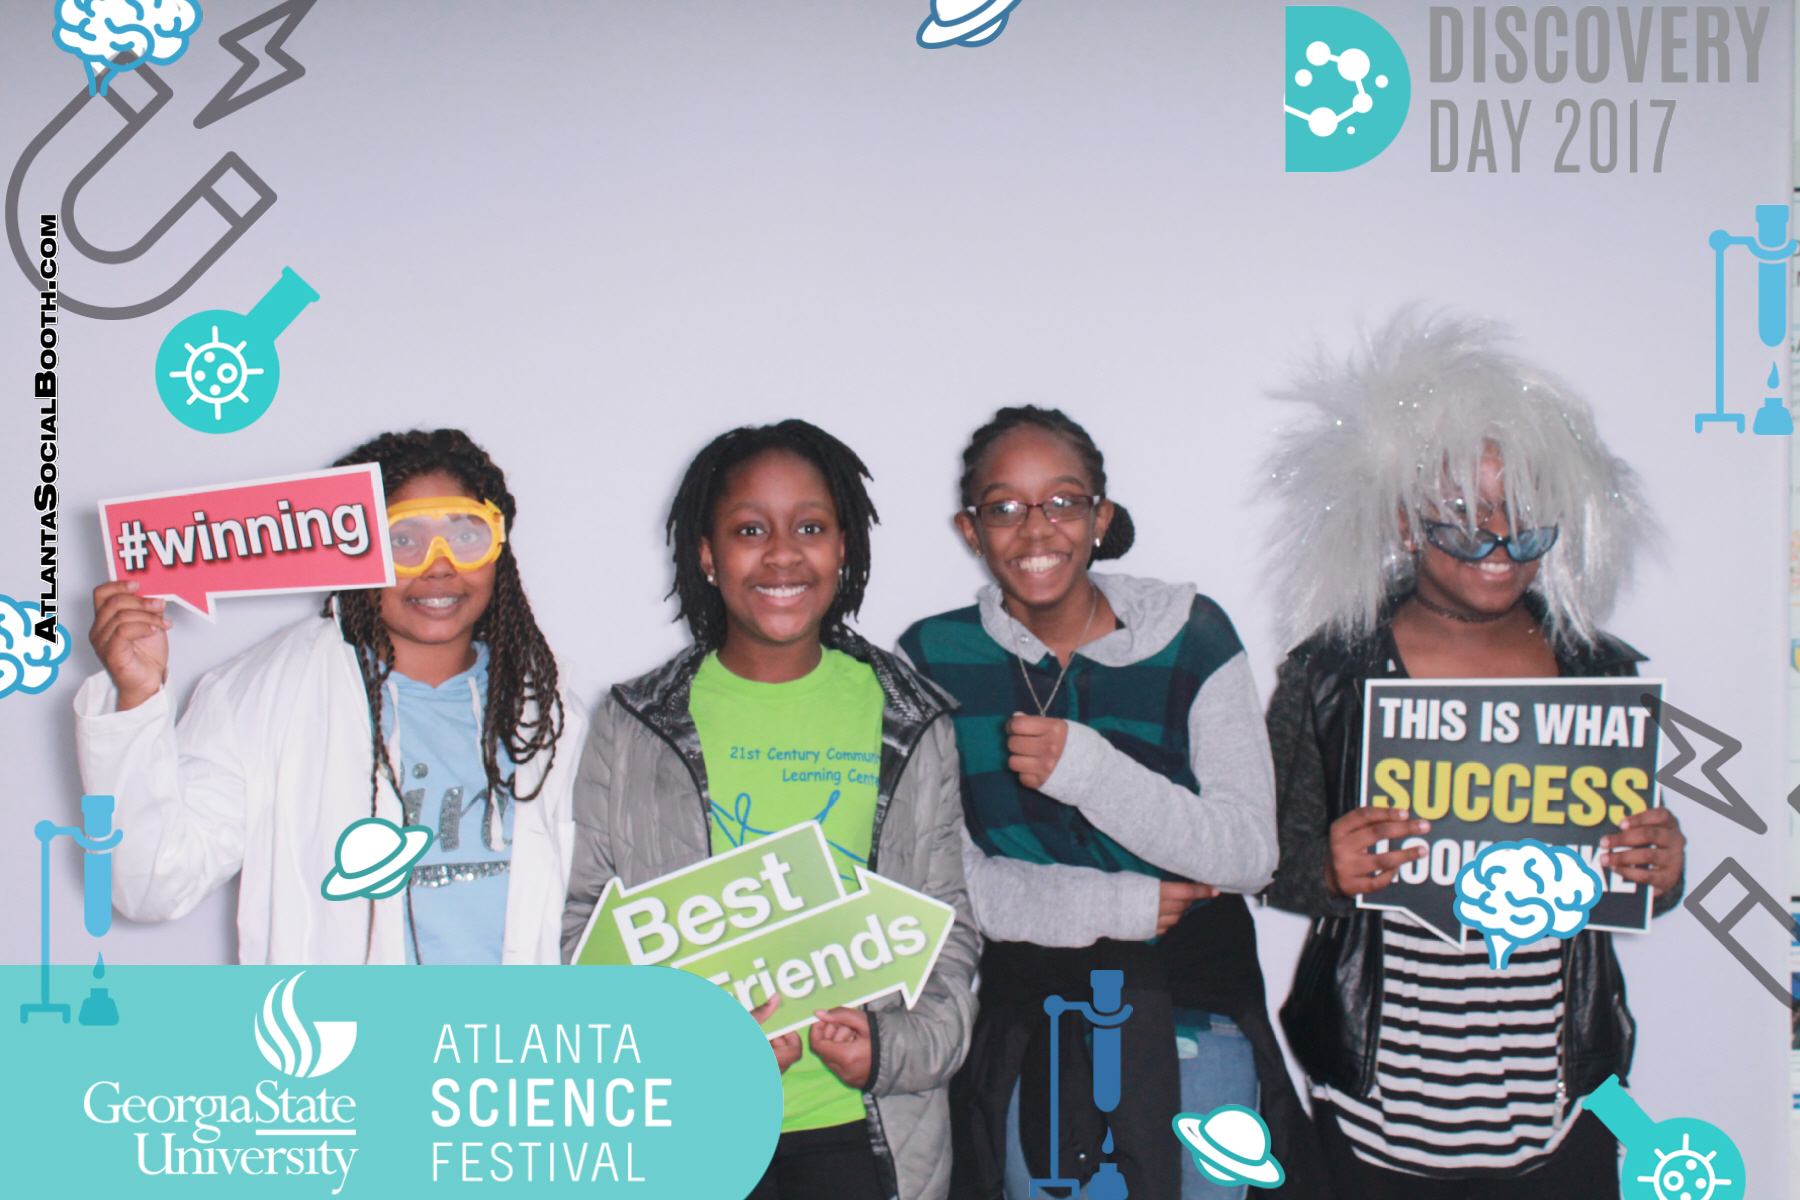 GSU Atlanta Science Festival